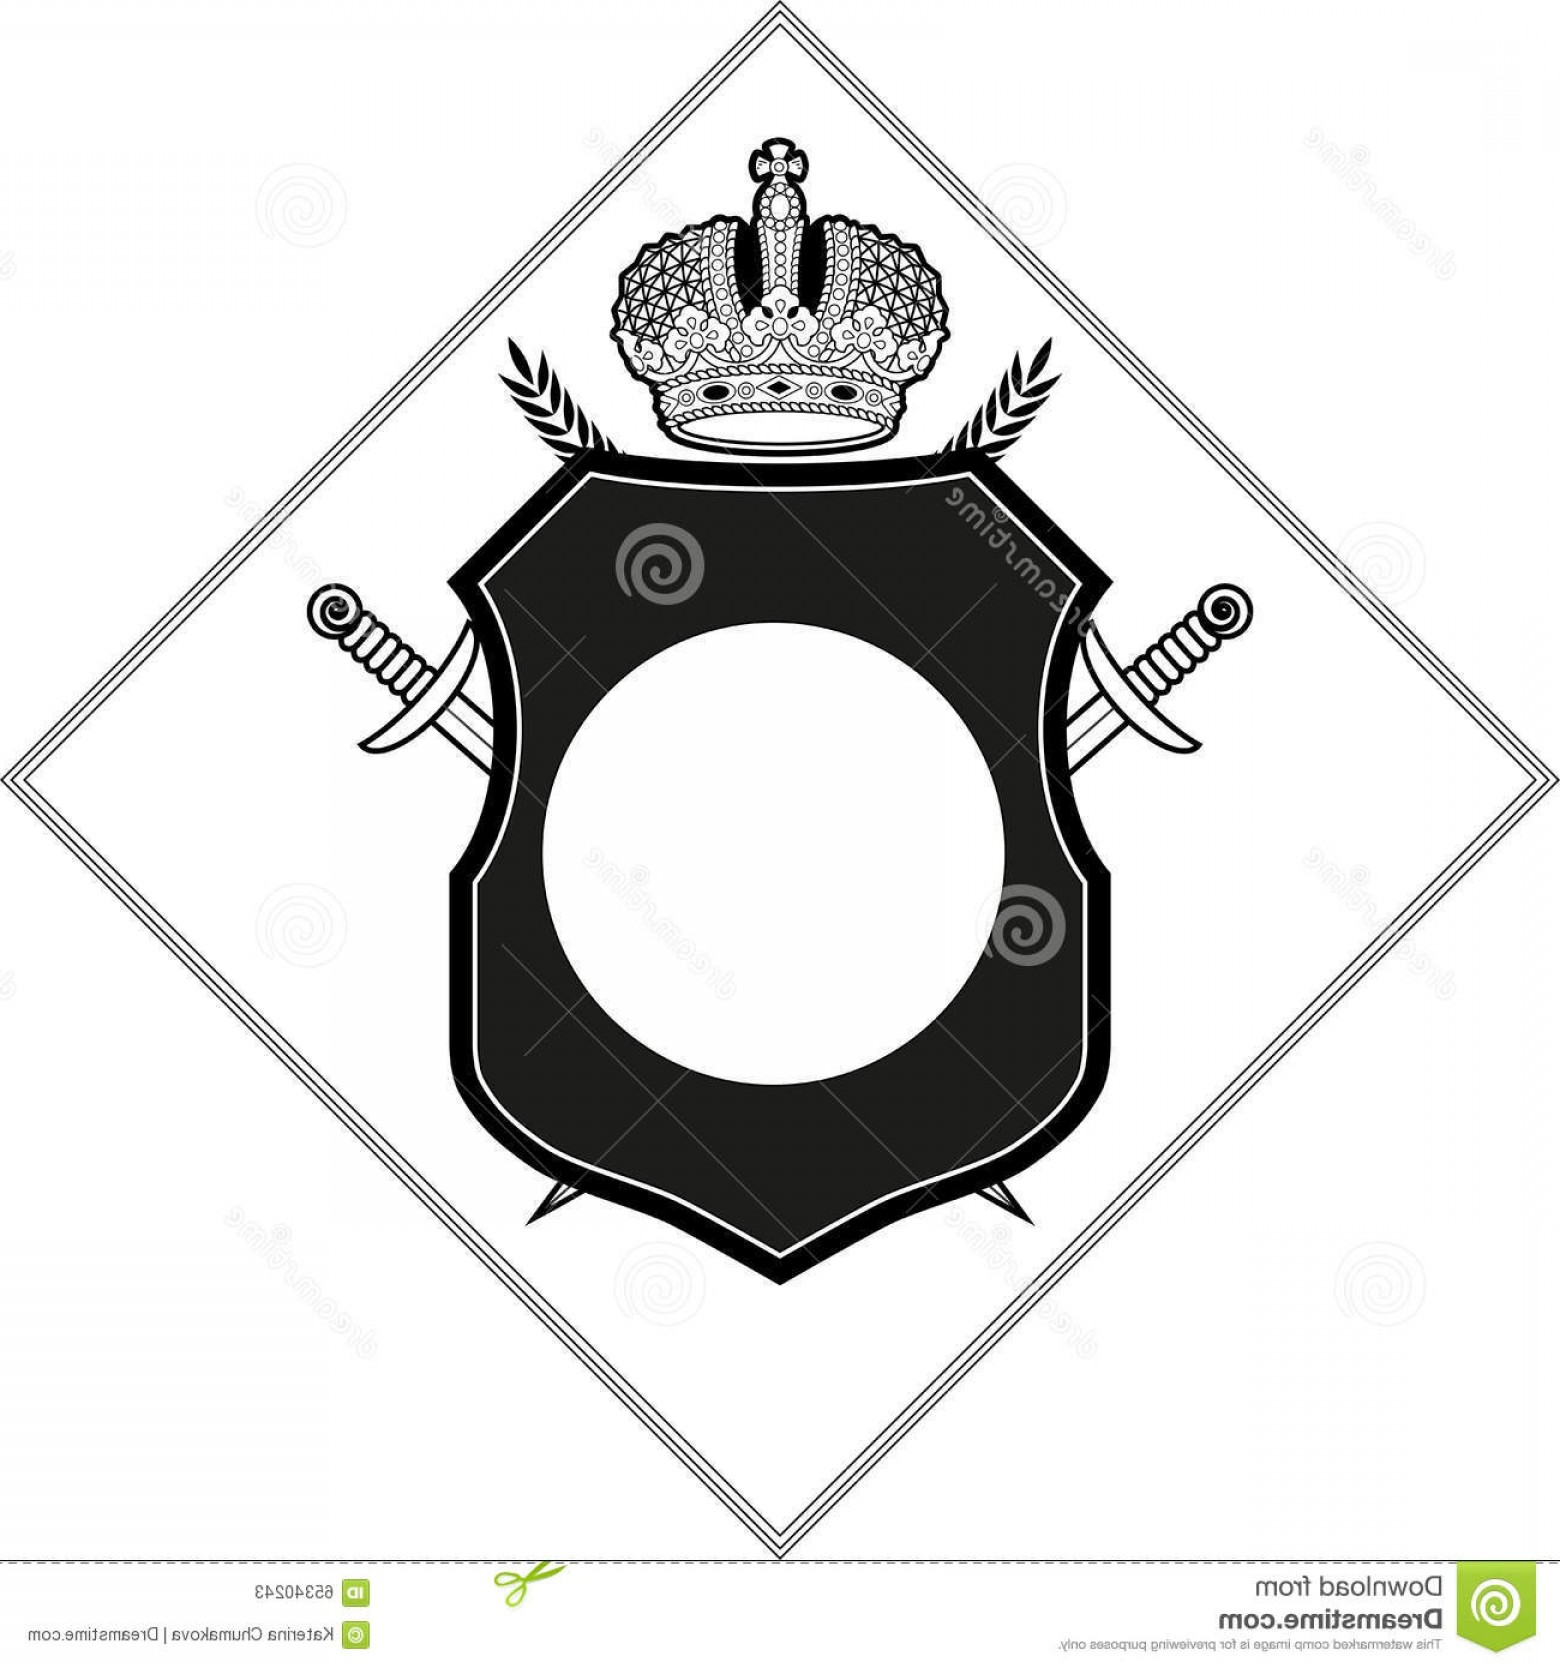 1560x1668 Stock Illustration Vector Coat Arms Design Template Crown Shield